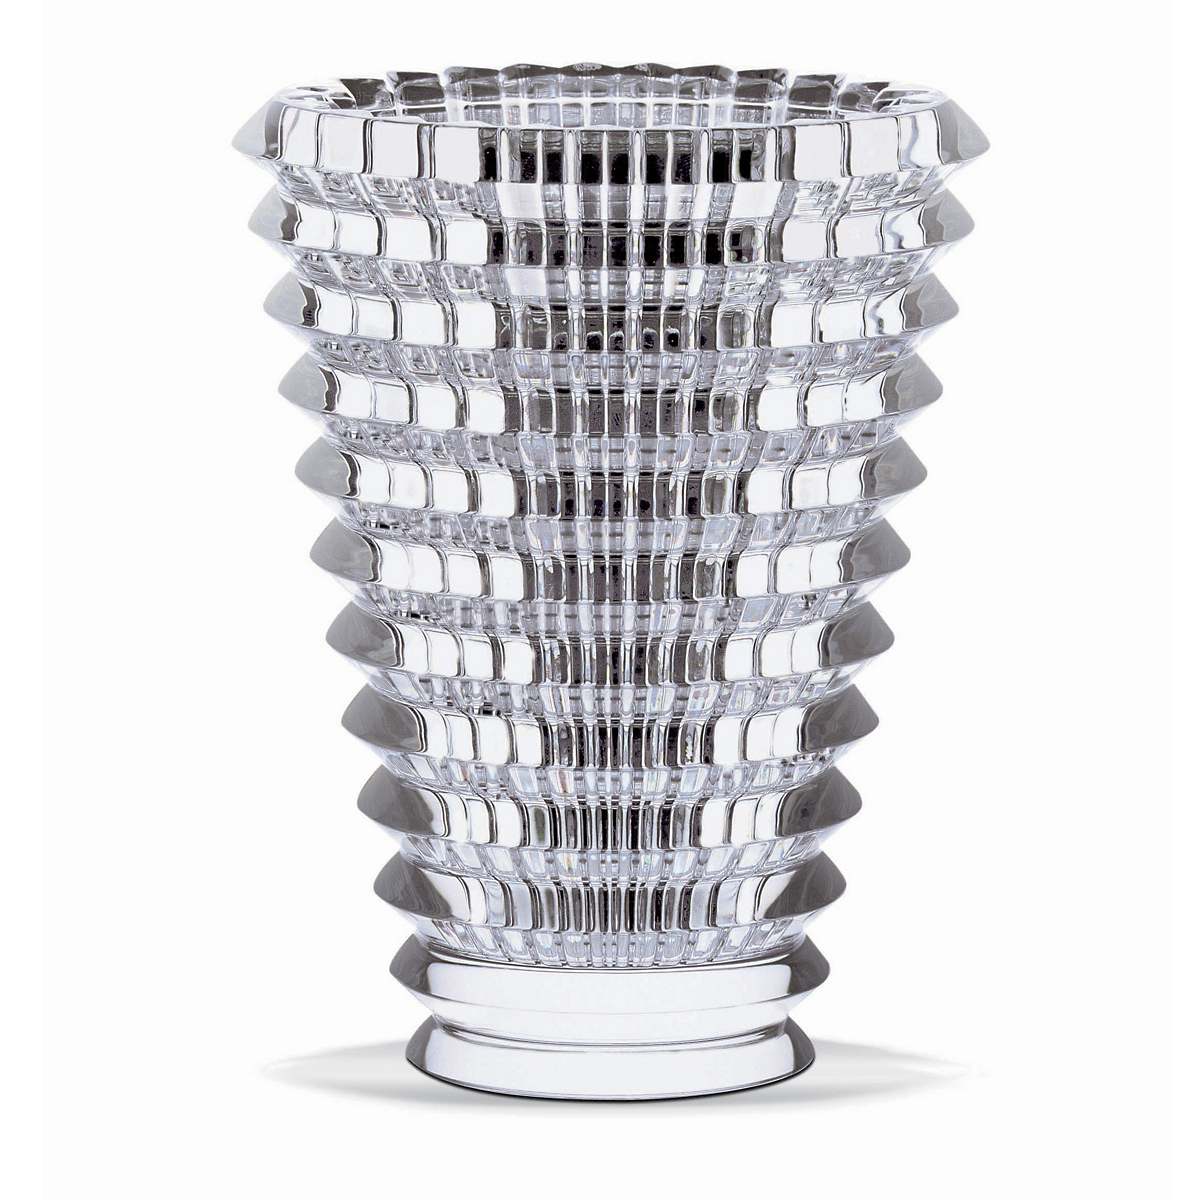 Baccarat Round Eye Vases, Clear